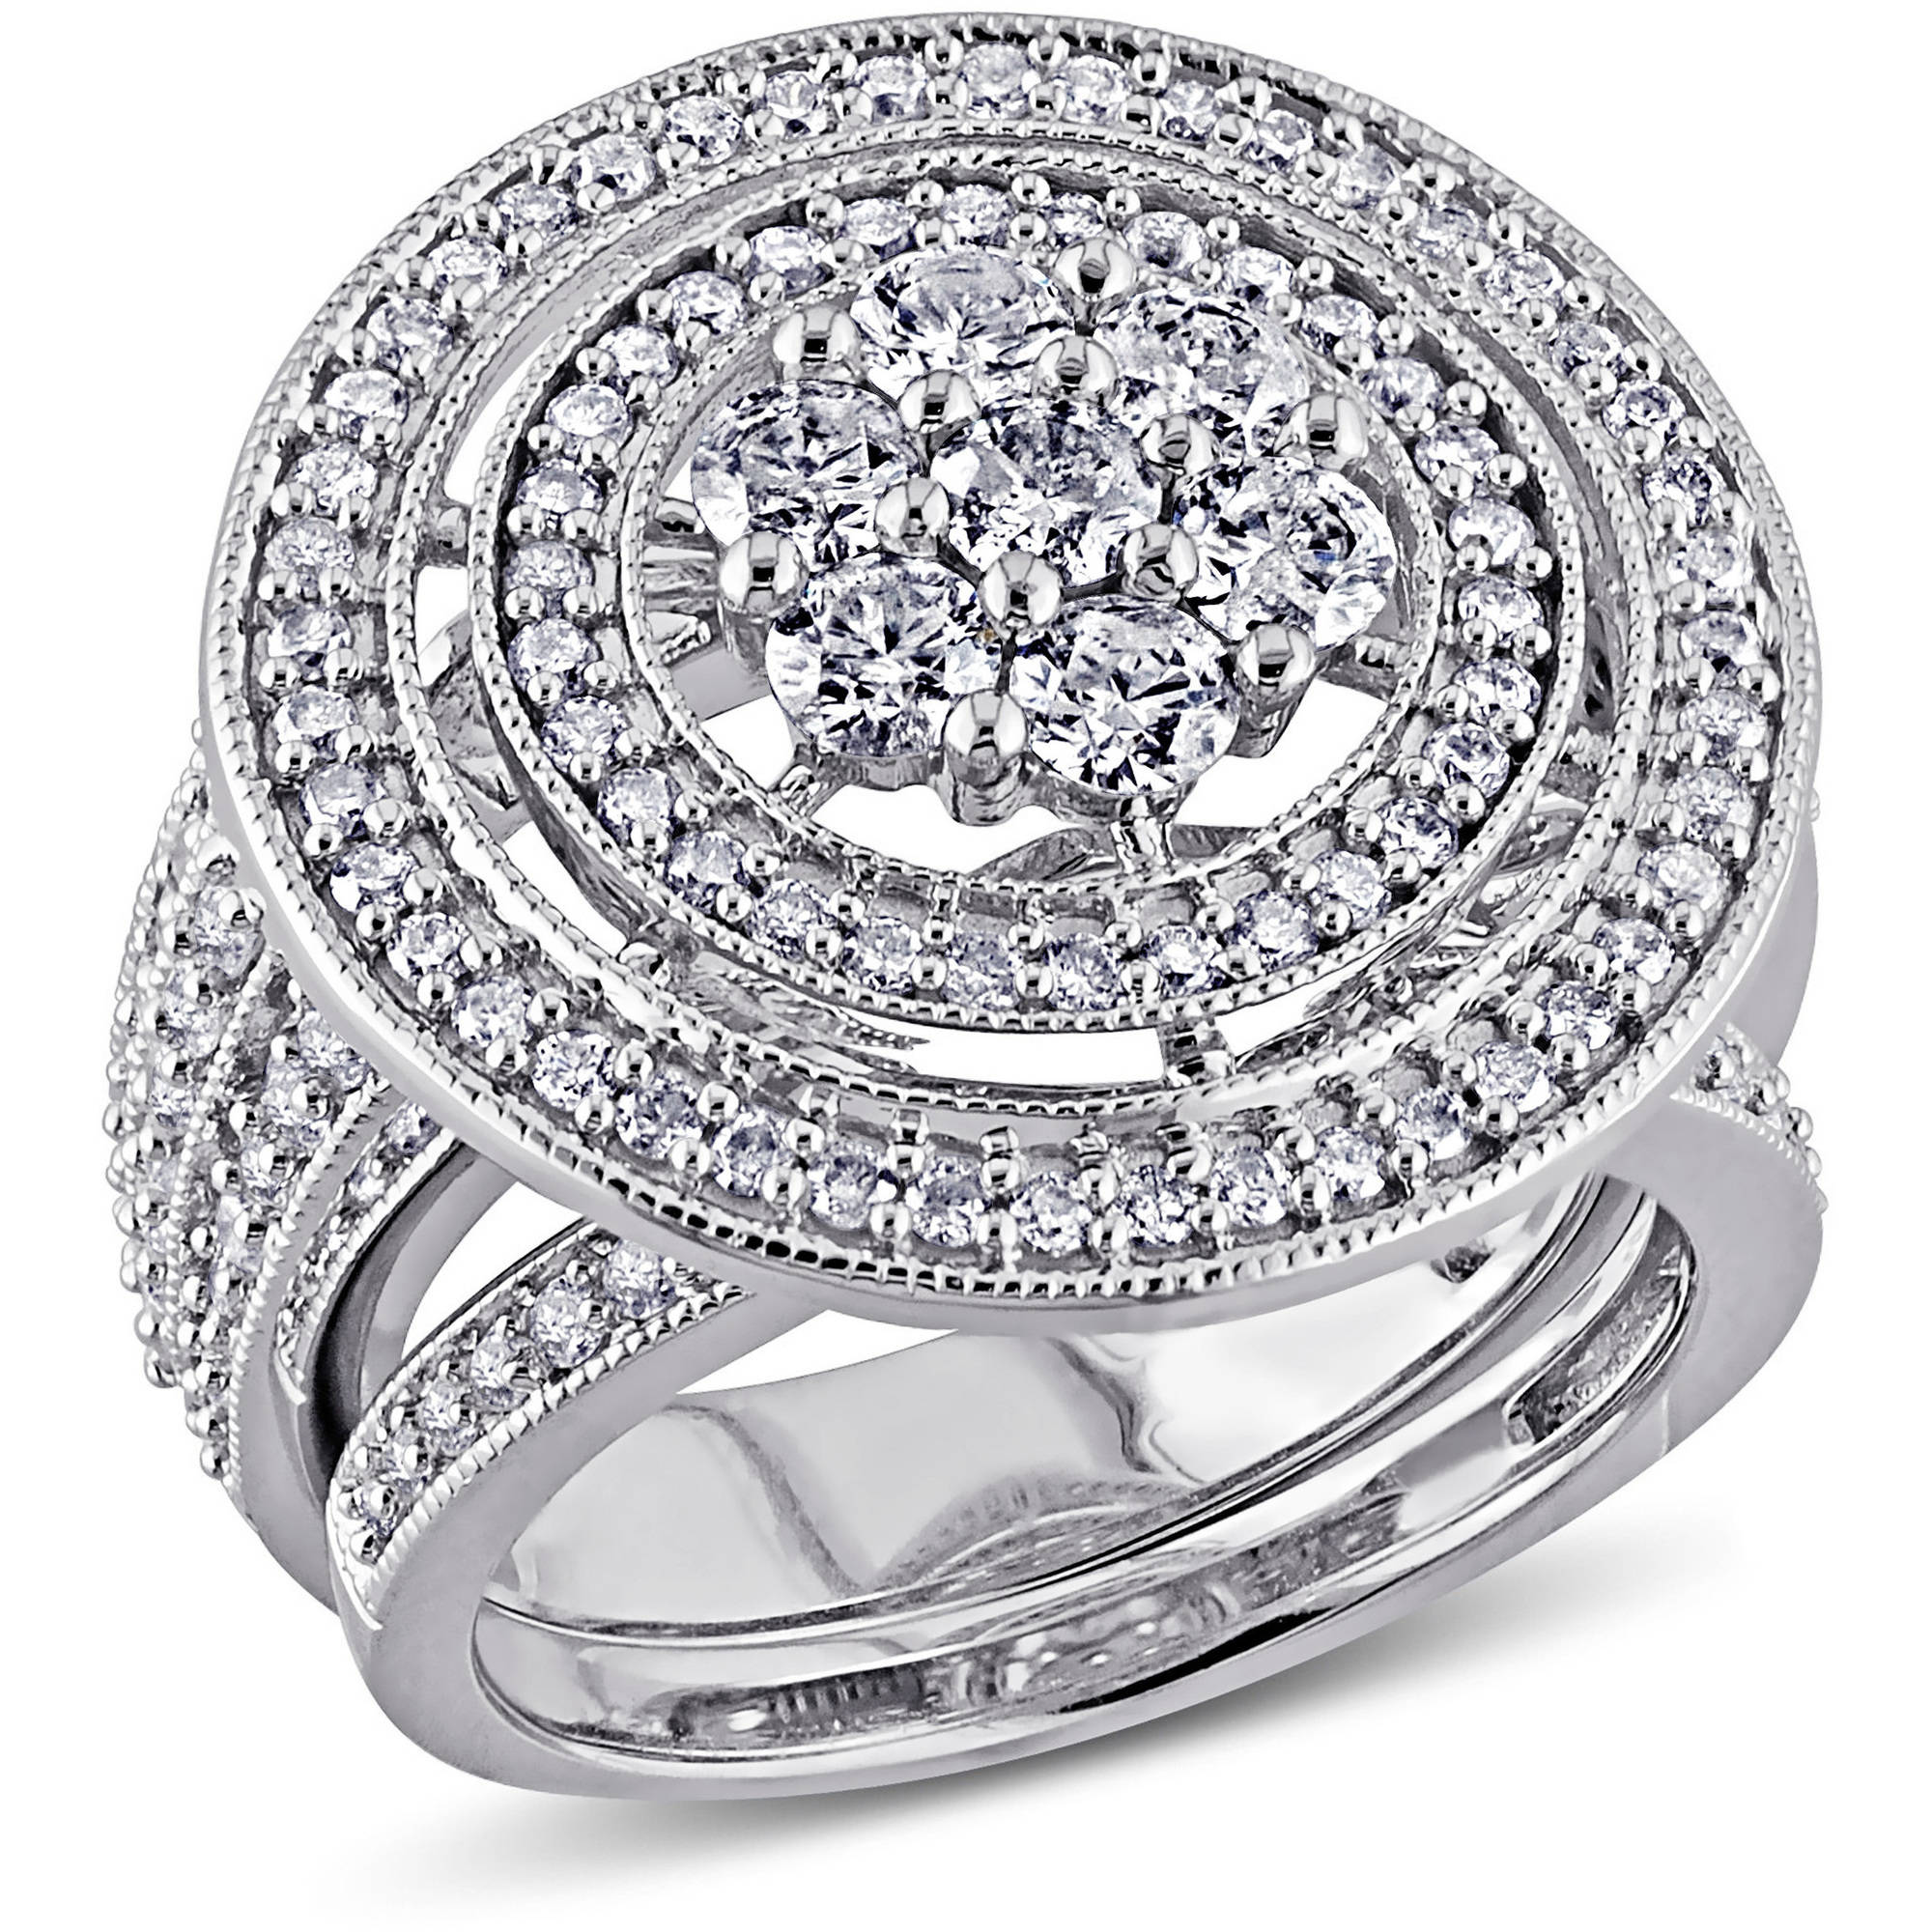 Miabella 2 Carat T.W. Diamond 10kt White Gold Bridal Set